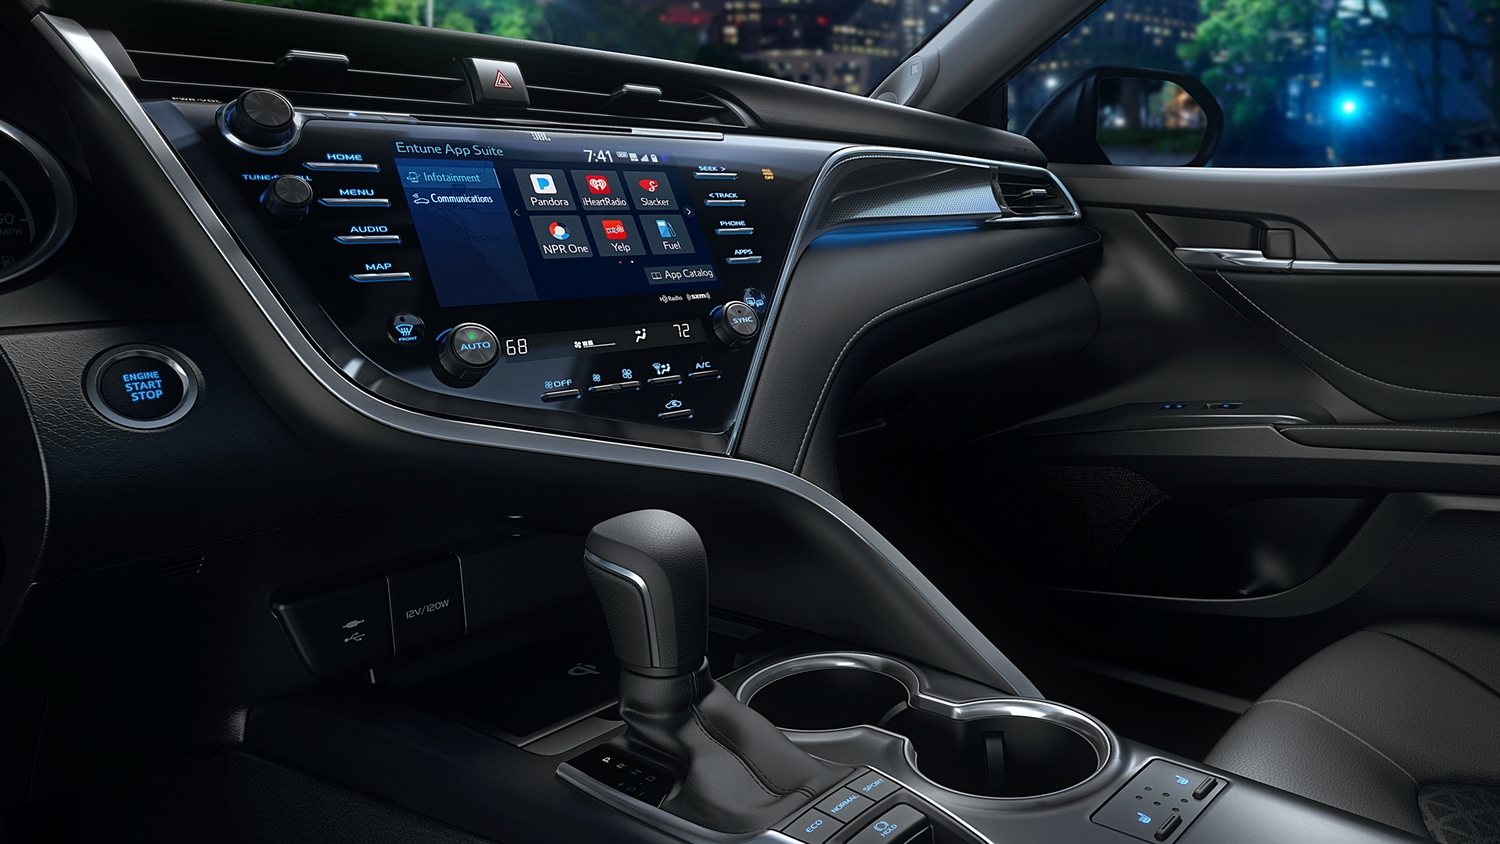 Tech-Loaded Interior of the 2018 Toyota Camry